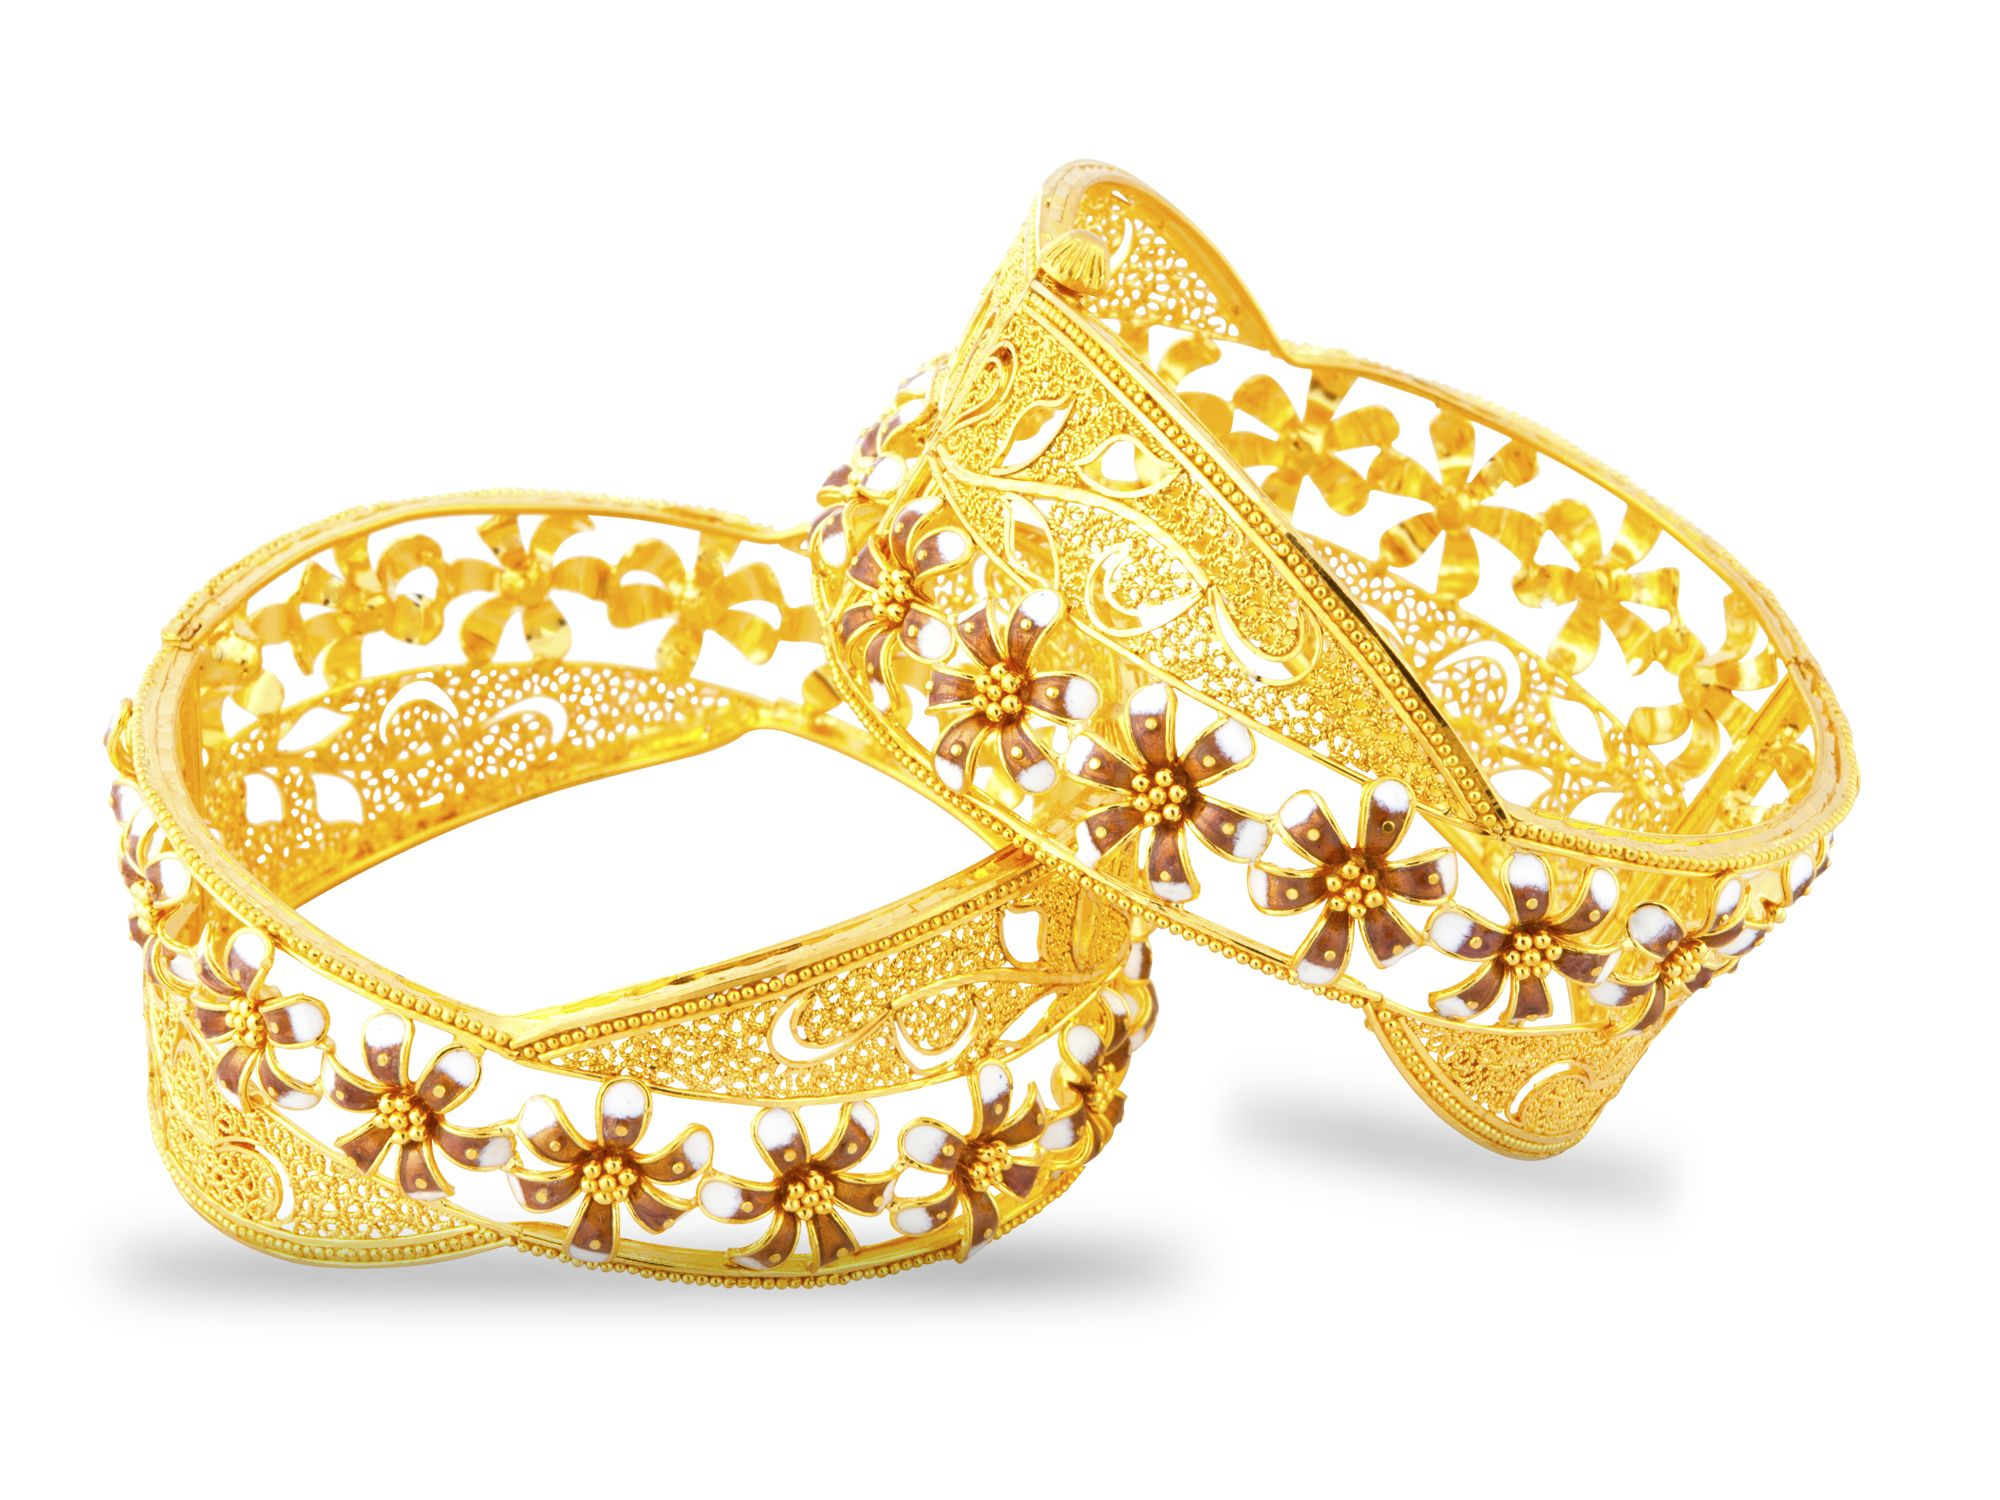 bhima gold and diamonds collection images - Google Search ...